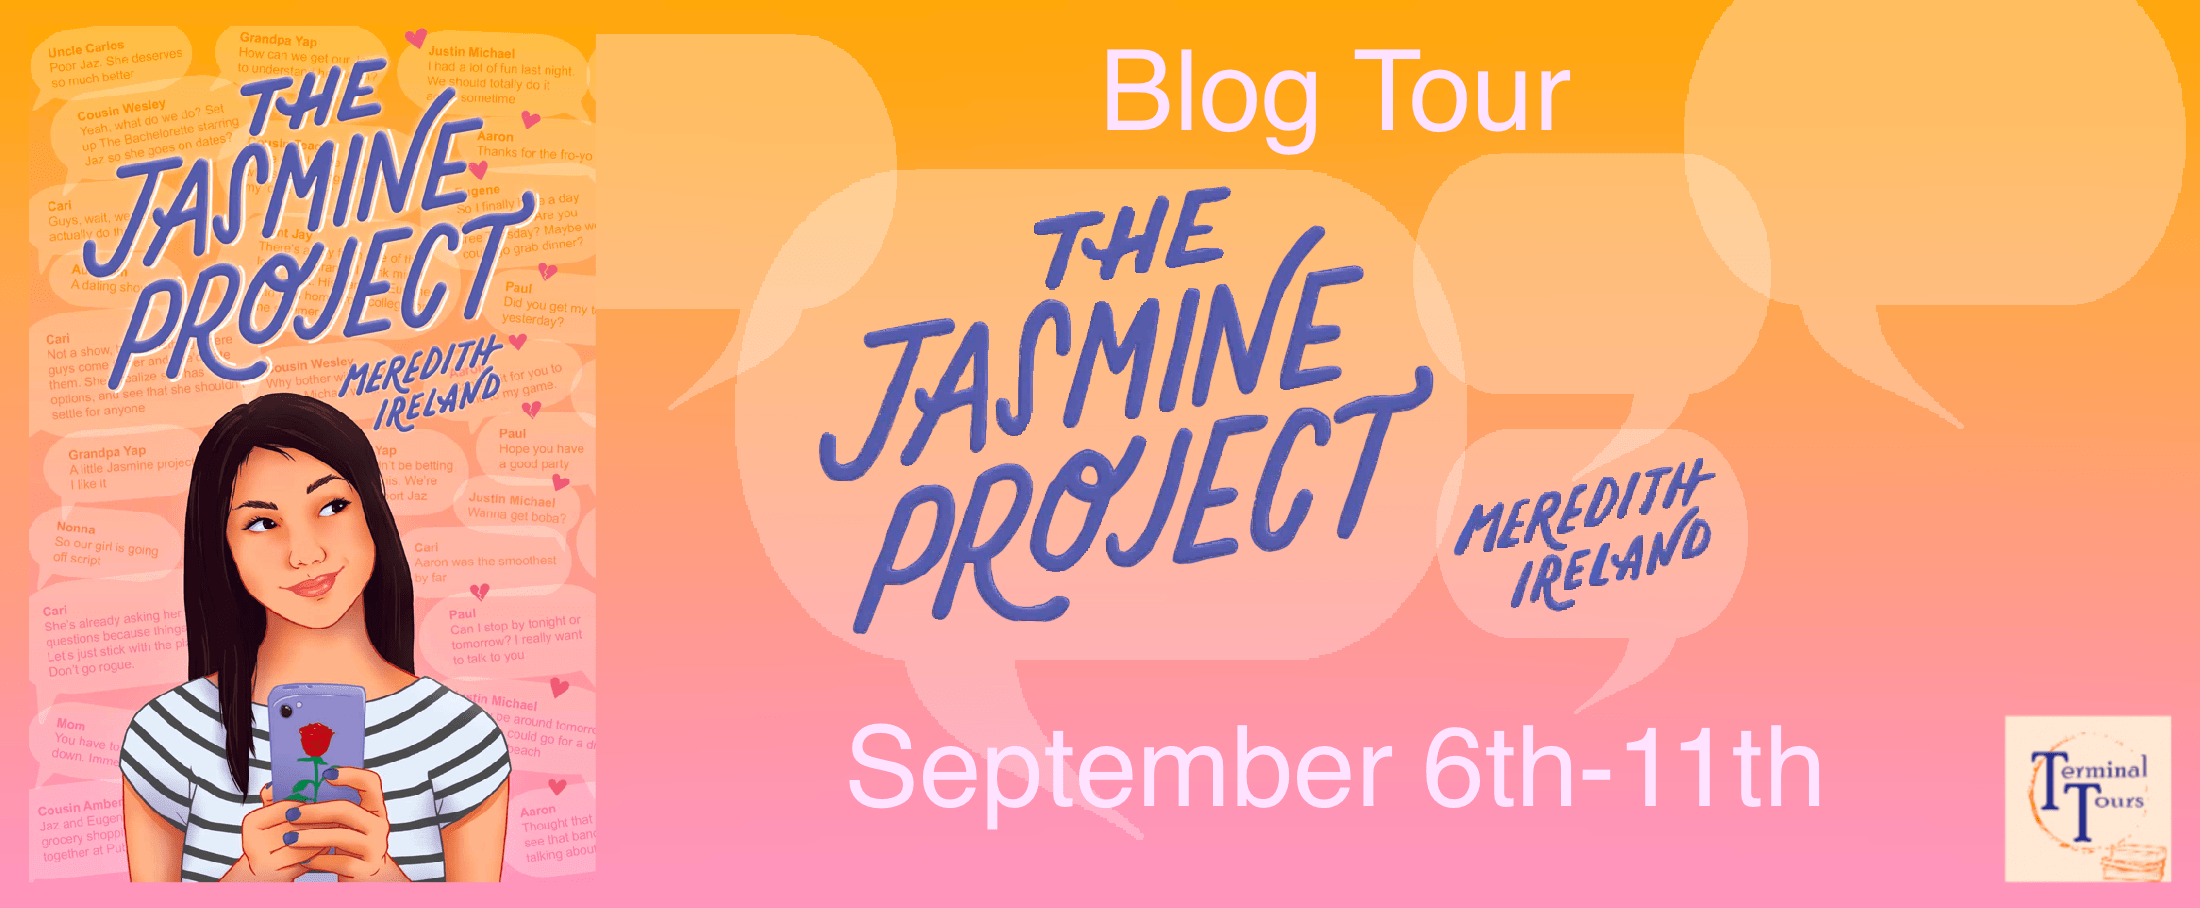 Blog Tour: The Jasmine Project by Meredith Ireland (Aesthetic Board!)